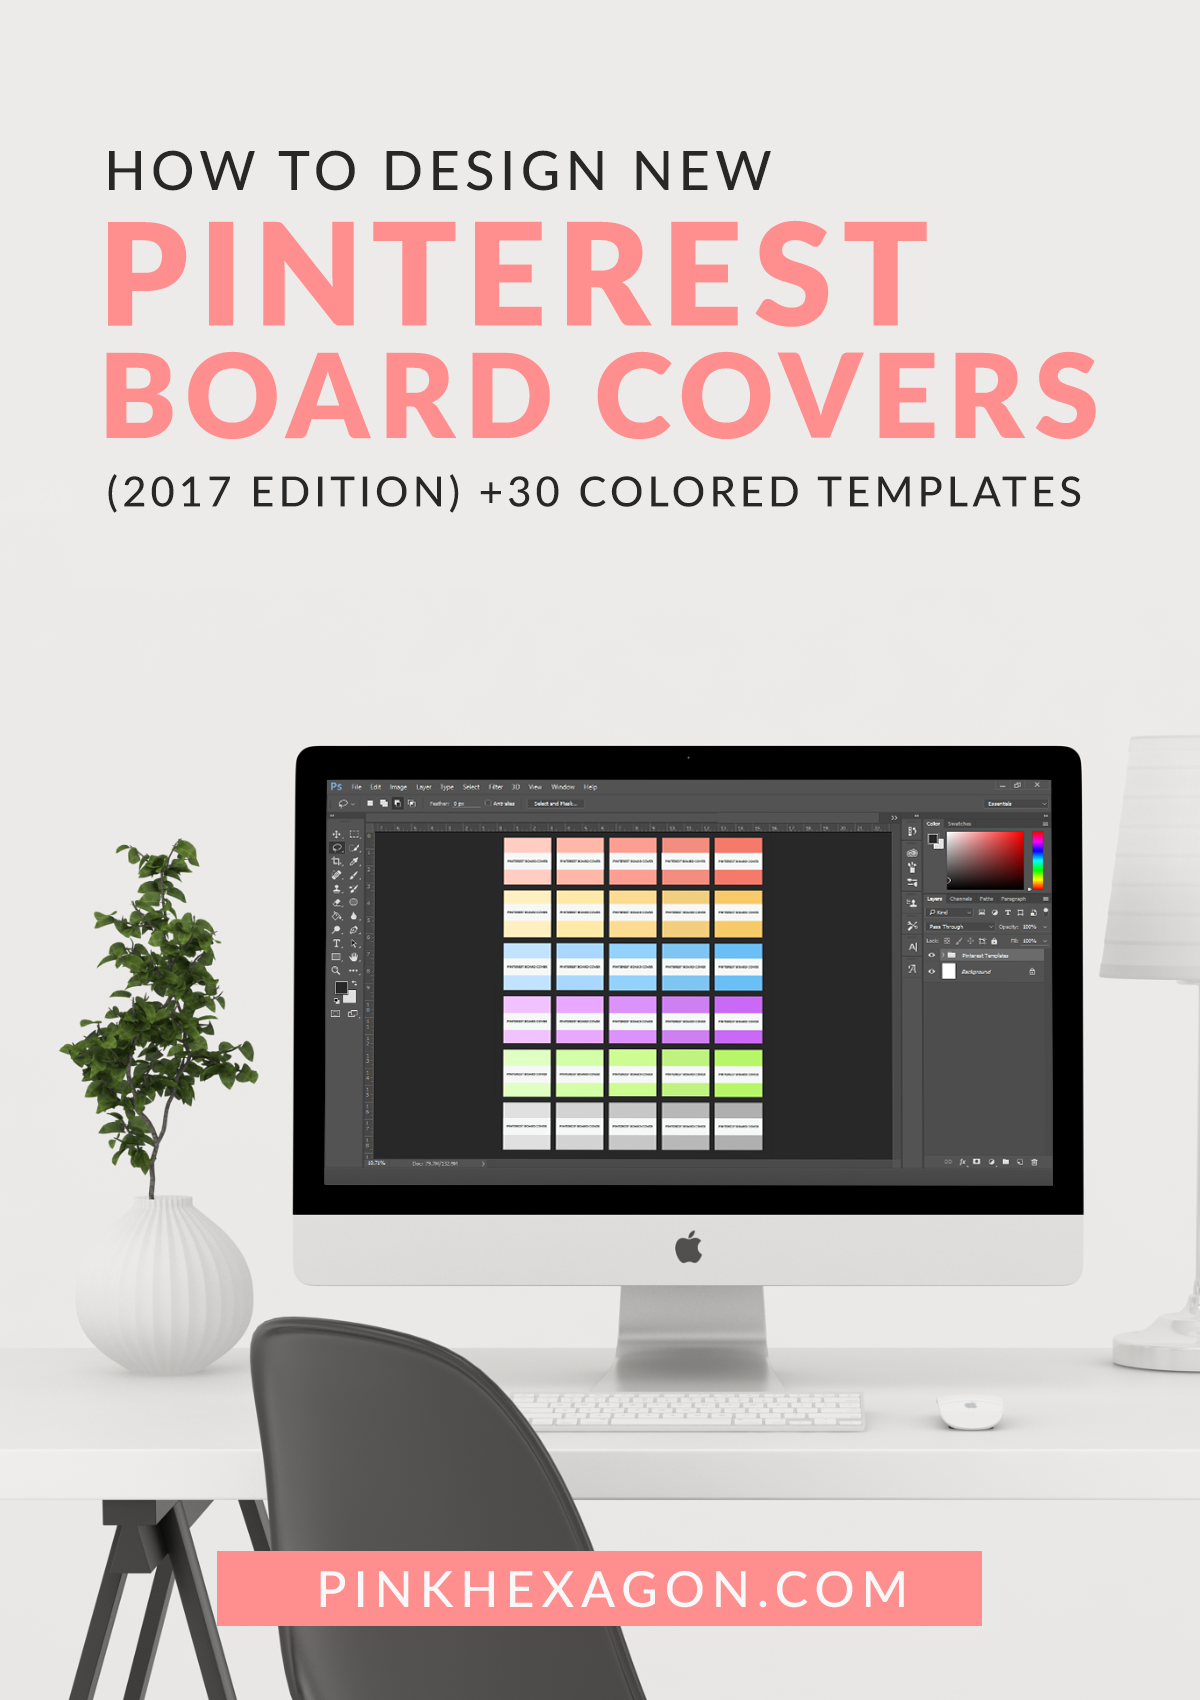 How to Design New Pinterest Board Covers 2017 Edition